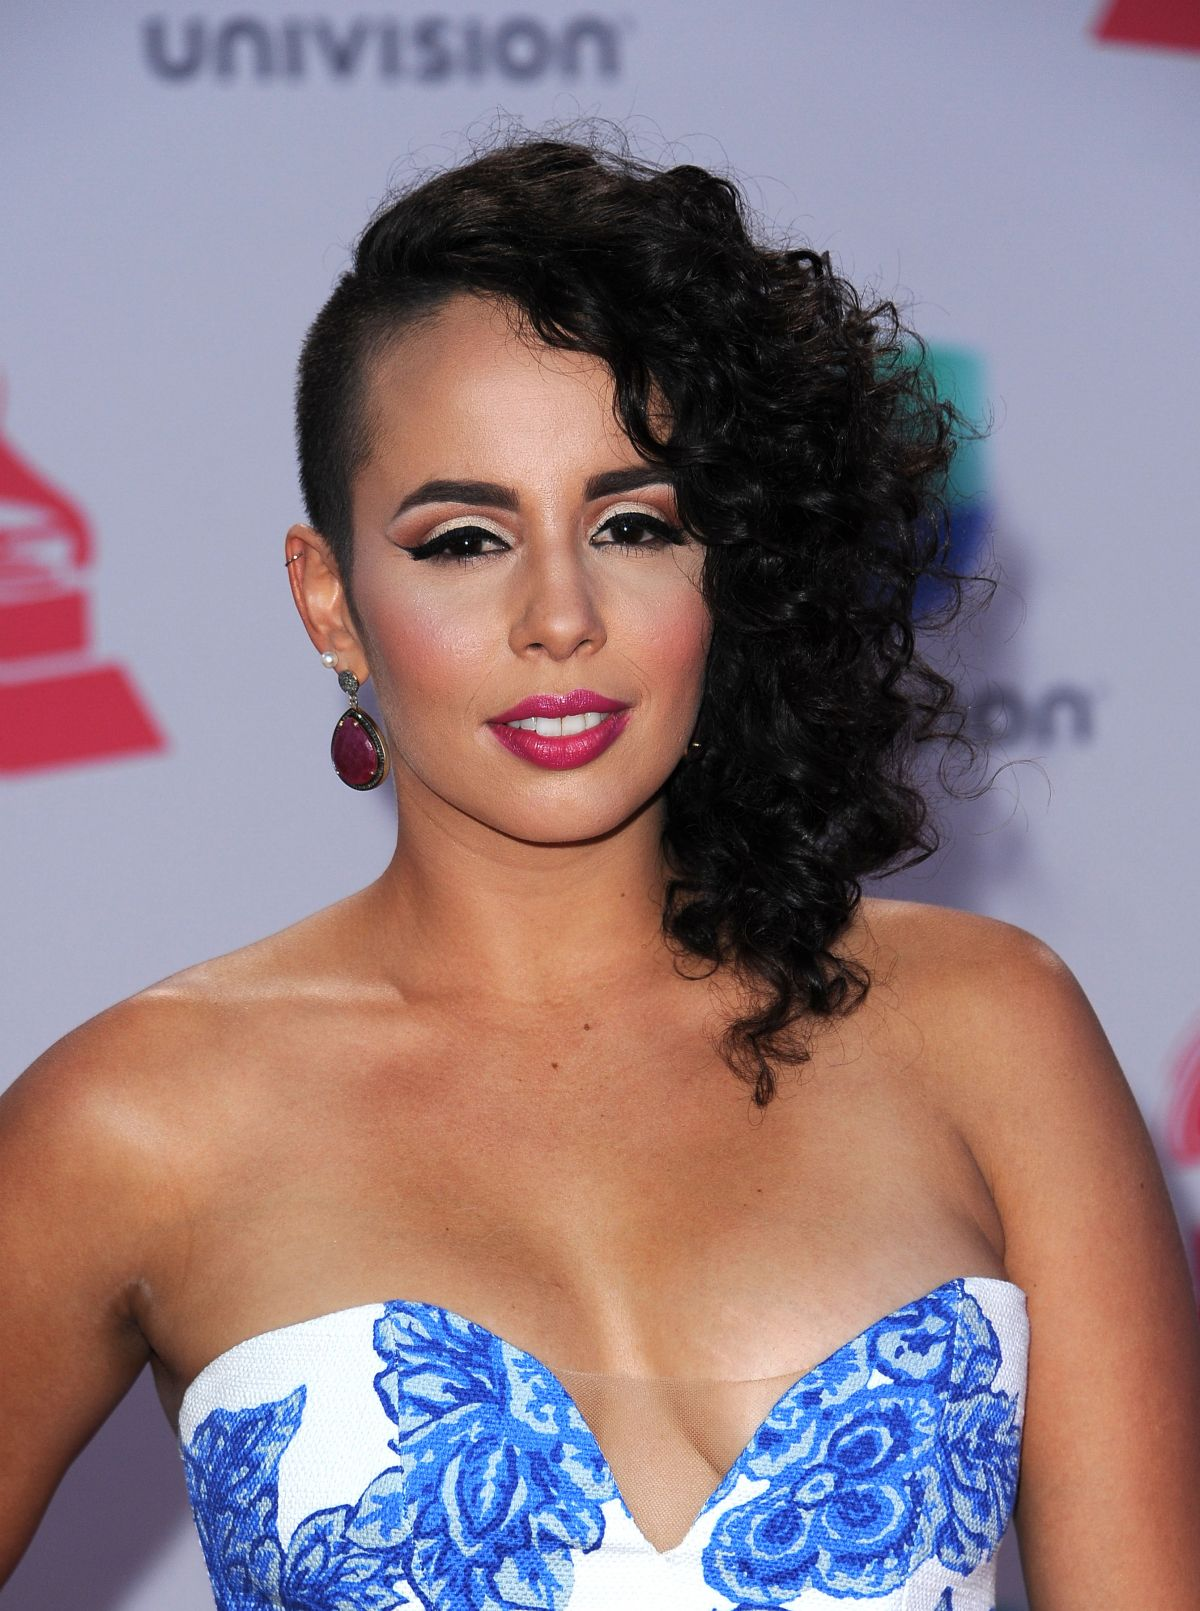 RAQUEL SOFIA at 2015 Latin Grammy Awards in Las Vegas 11/18/2015